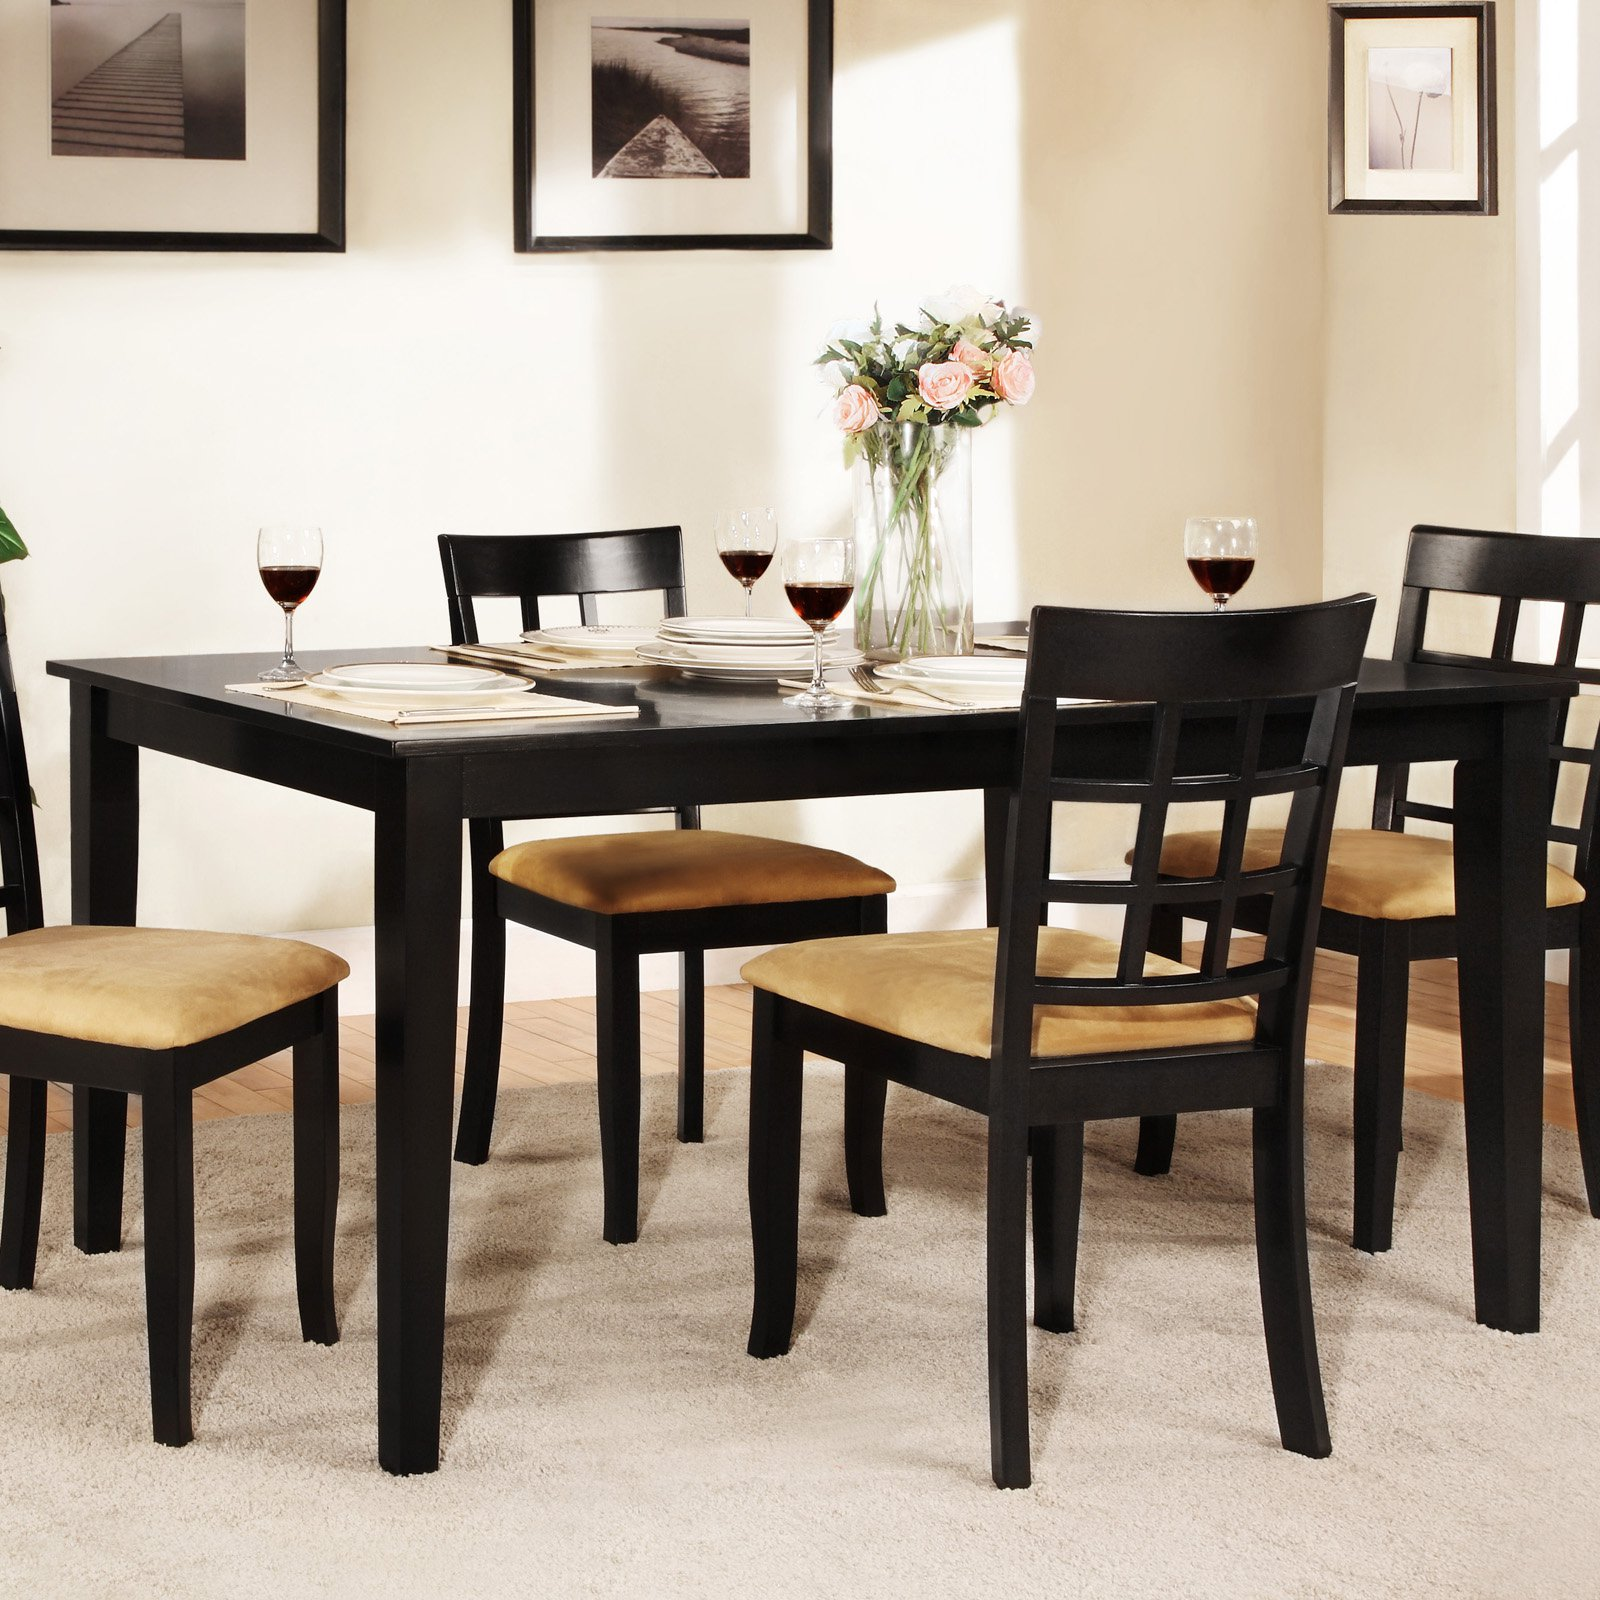 Weston Home Tibalt Black Dining Table -  in. - Walmart